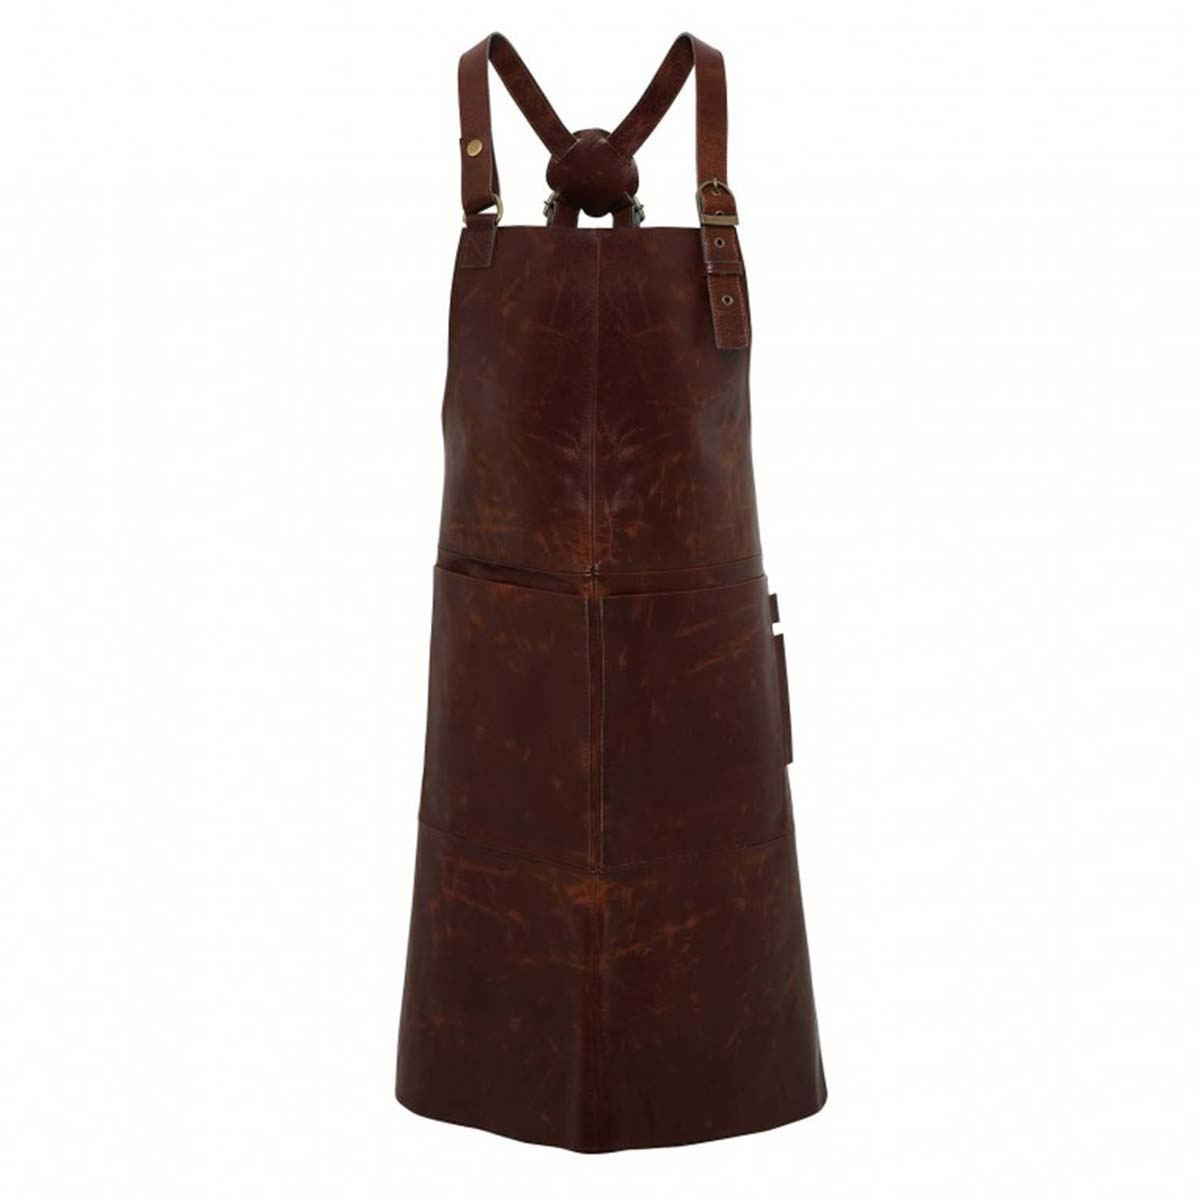 Artisan 100% Leather Cross Back Bib Apron - pr140_brown_ft